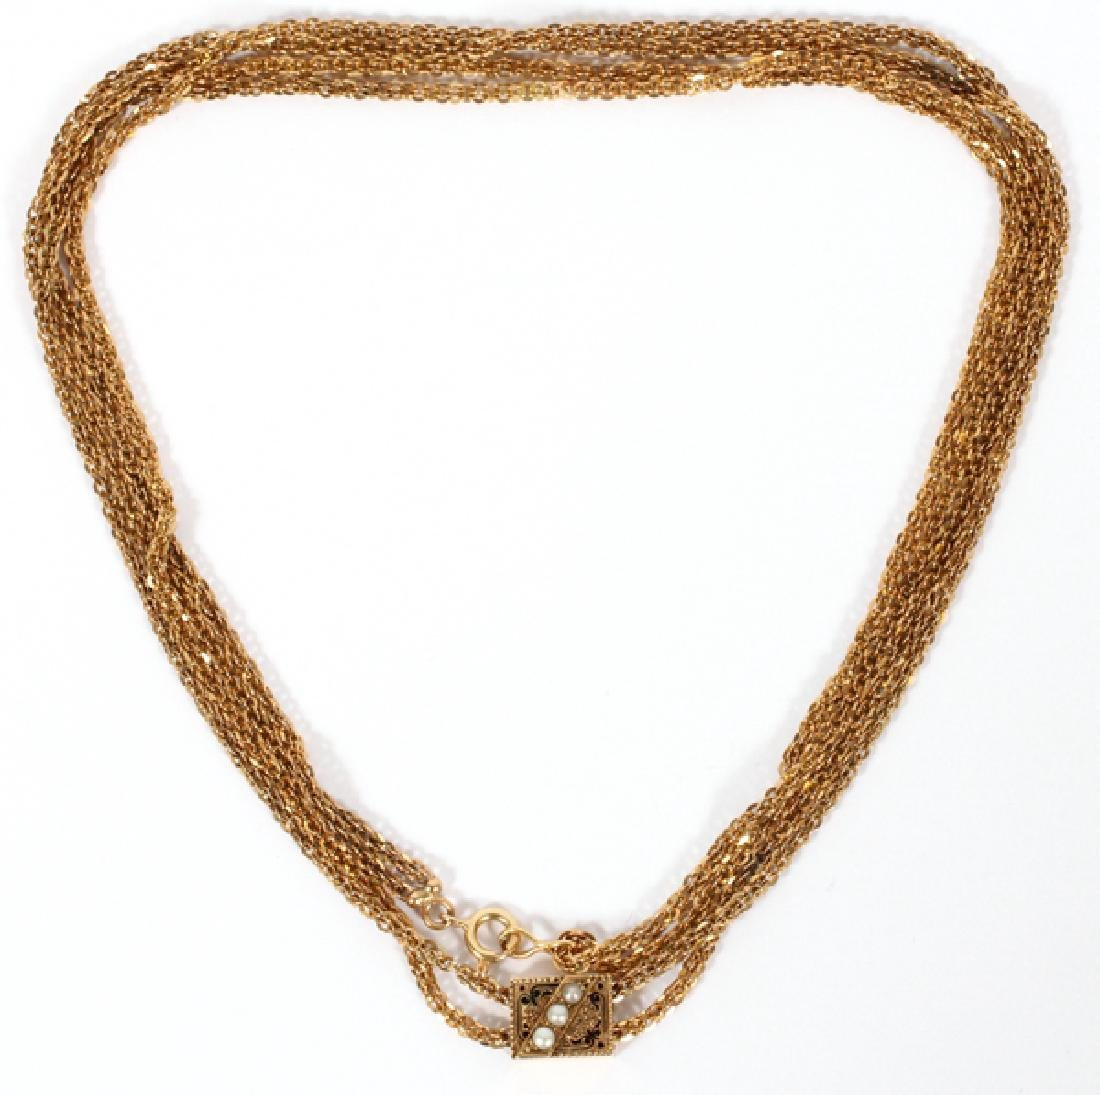 DOUBLE STRAND 14KT YELLOW GOLD SLIDE NECKLACE